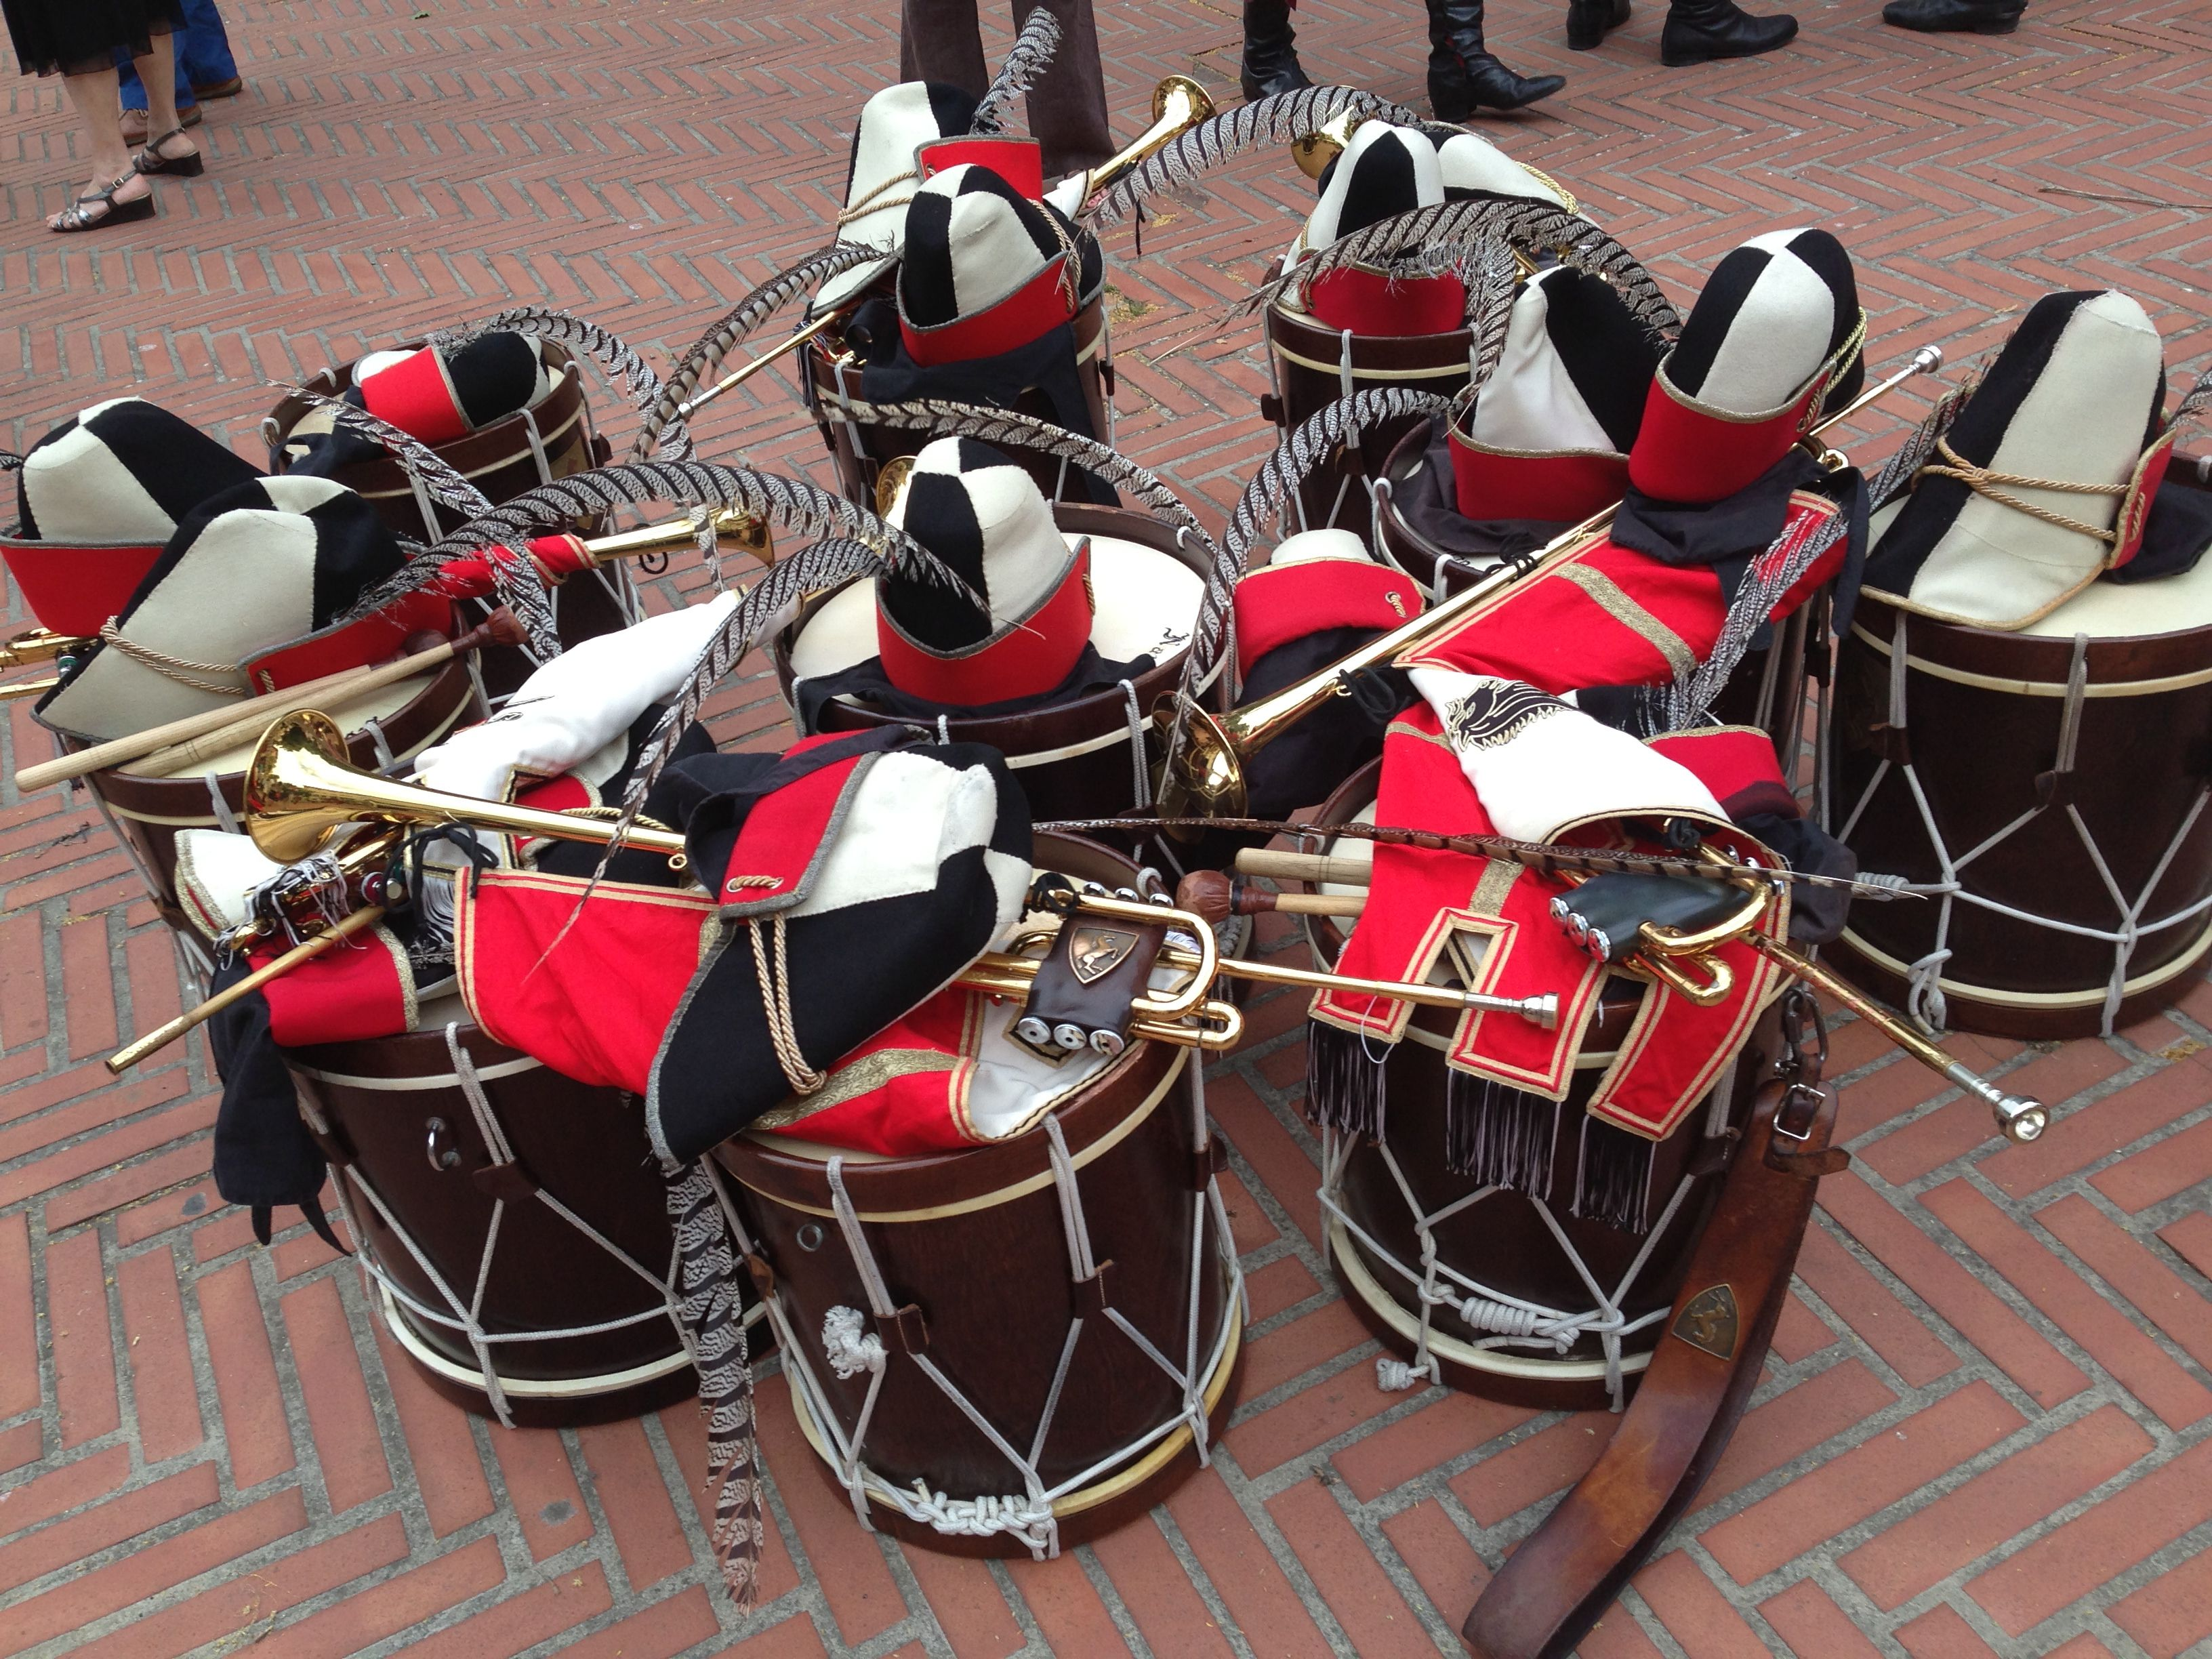 Drums And Trumpets Before The Parade Trumpets Trumpet Drums